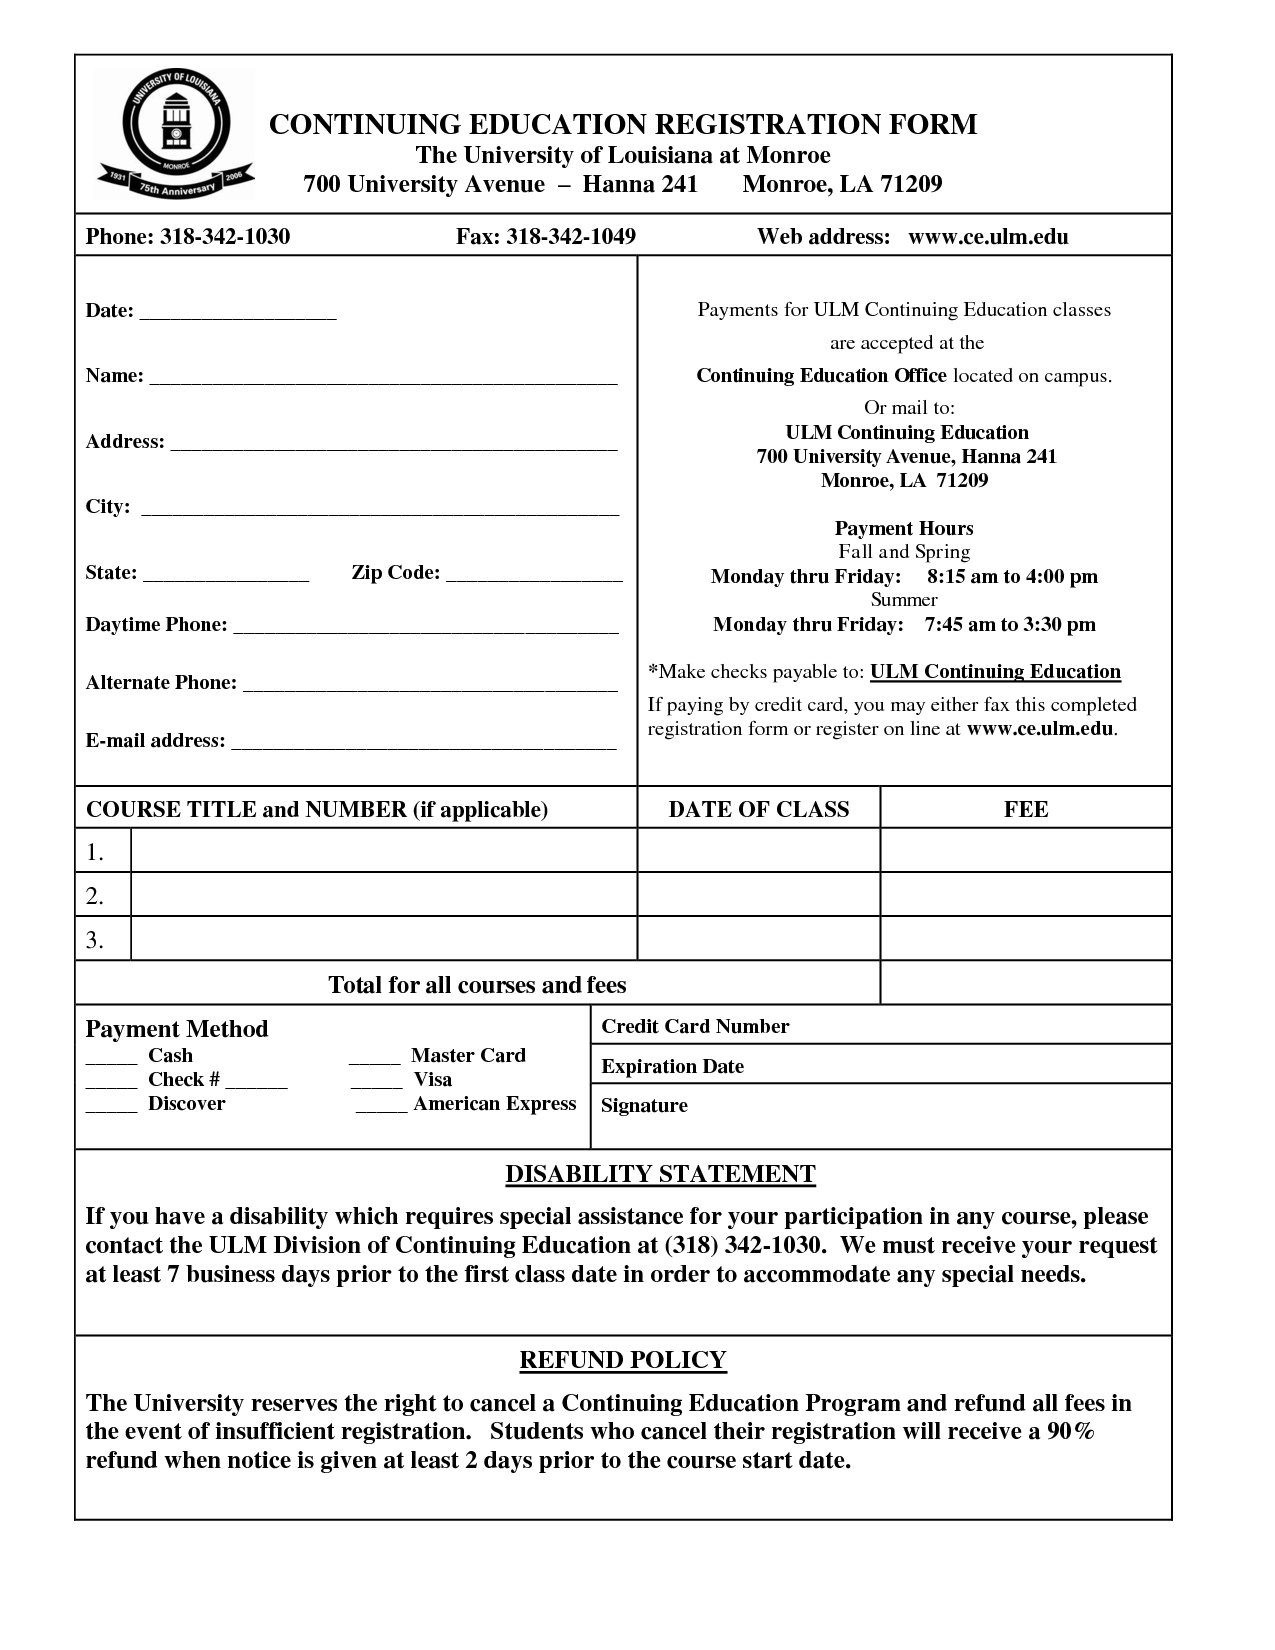 Free Registration Form Template | charlotte clergy coalition